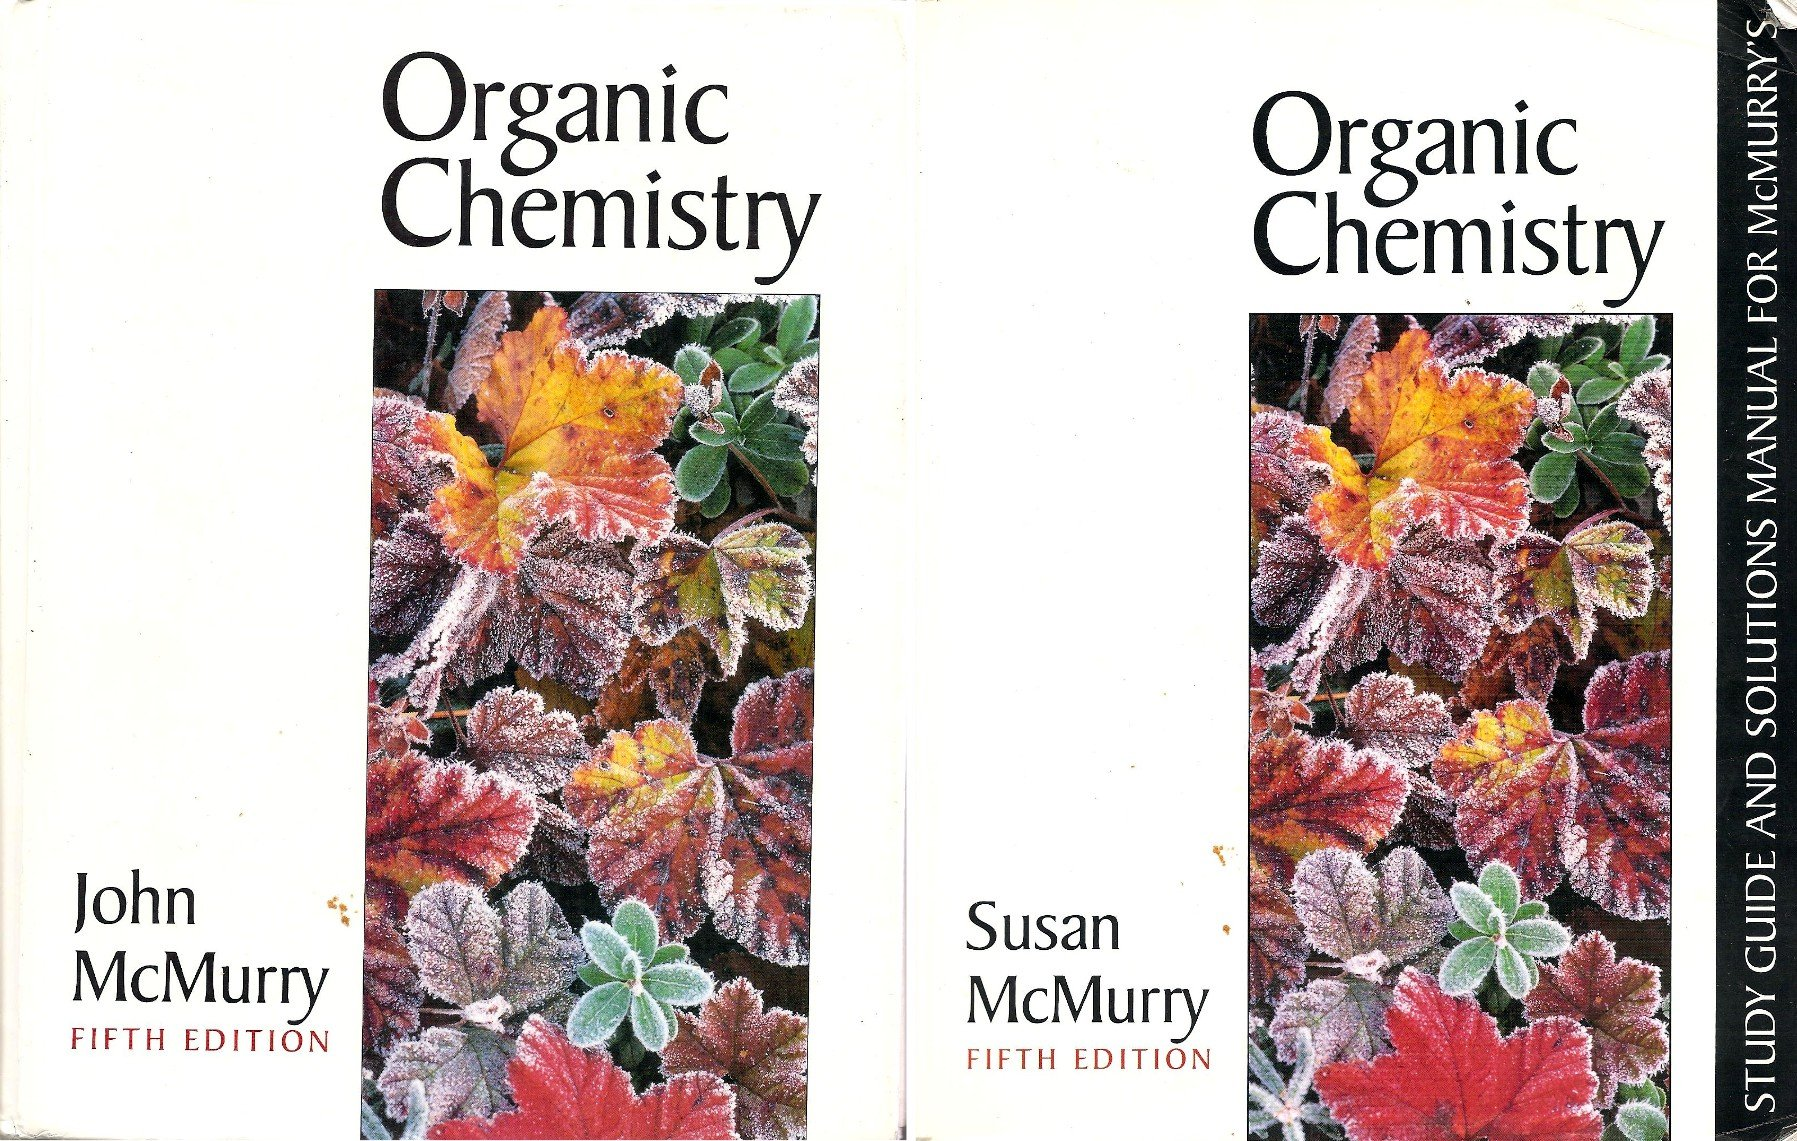 Study Guide and Solutions Manual for McMurry's Organic Chemistry Fifth  Edition: Susan McMurry: Amazon.com: Books